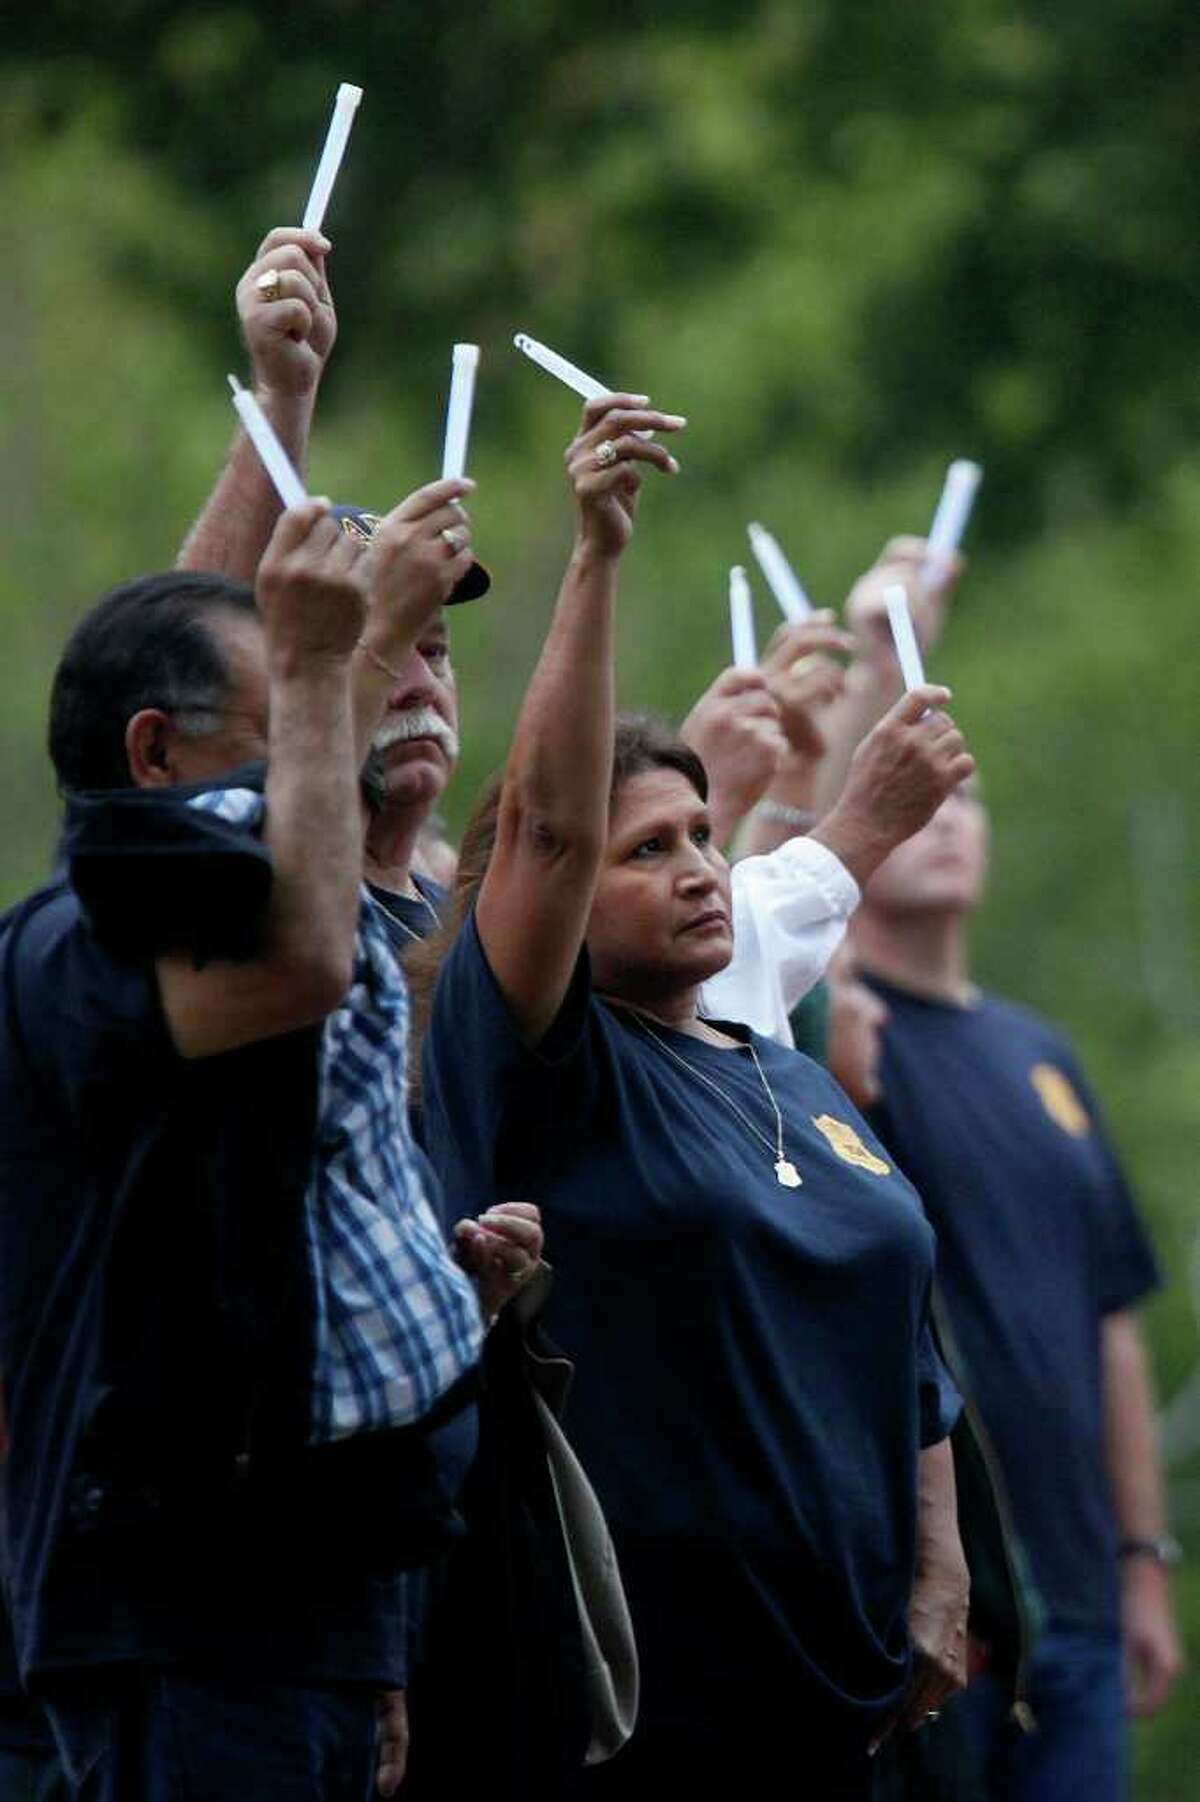 Elo Anders (center), who went to school with San Antonio Police Officer Hector Garza's widow, and others hold up glow sticks on Thursday, Oct. 27, 2011, before the execution of Frank Garcia, who killed Garza in 2001.